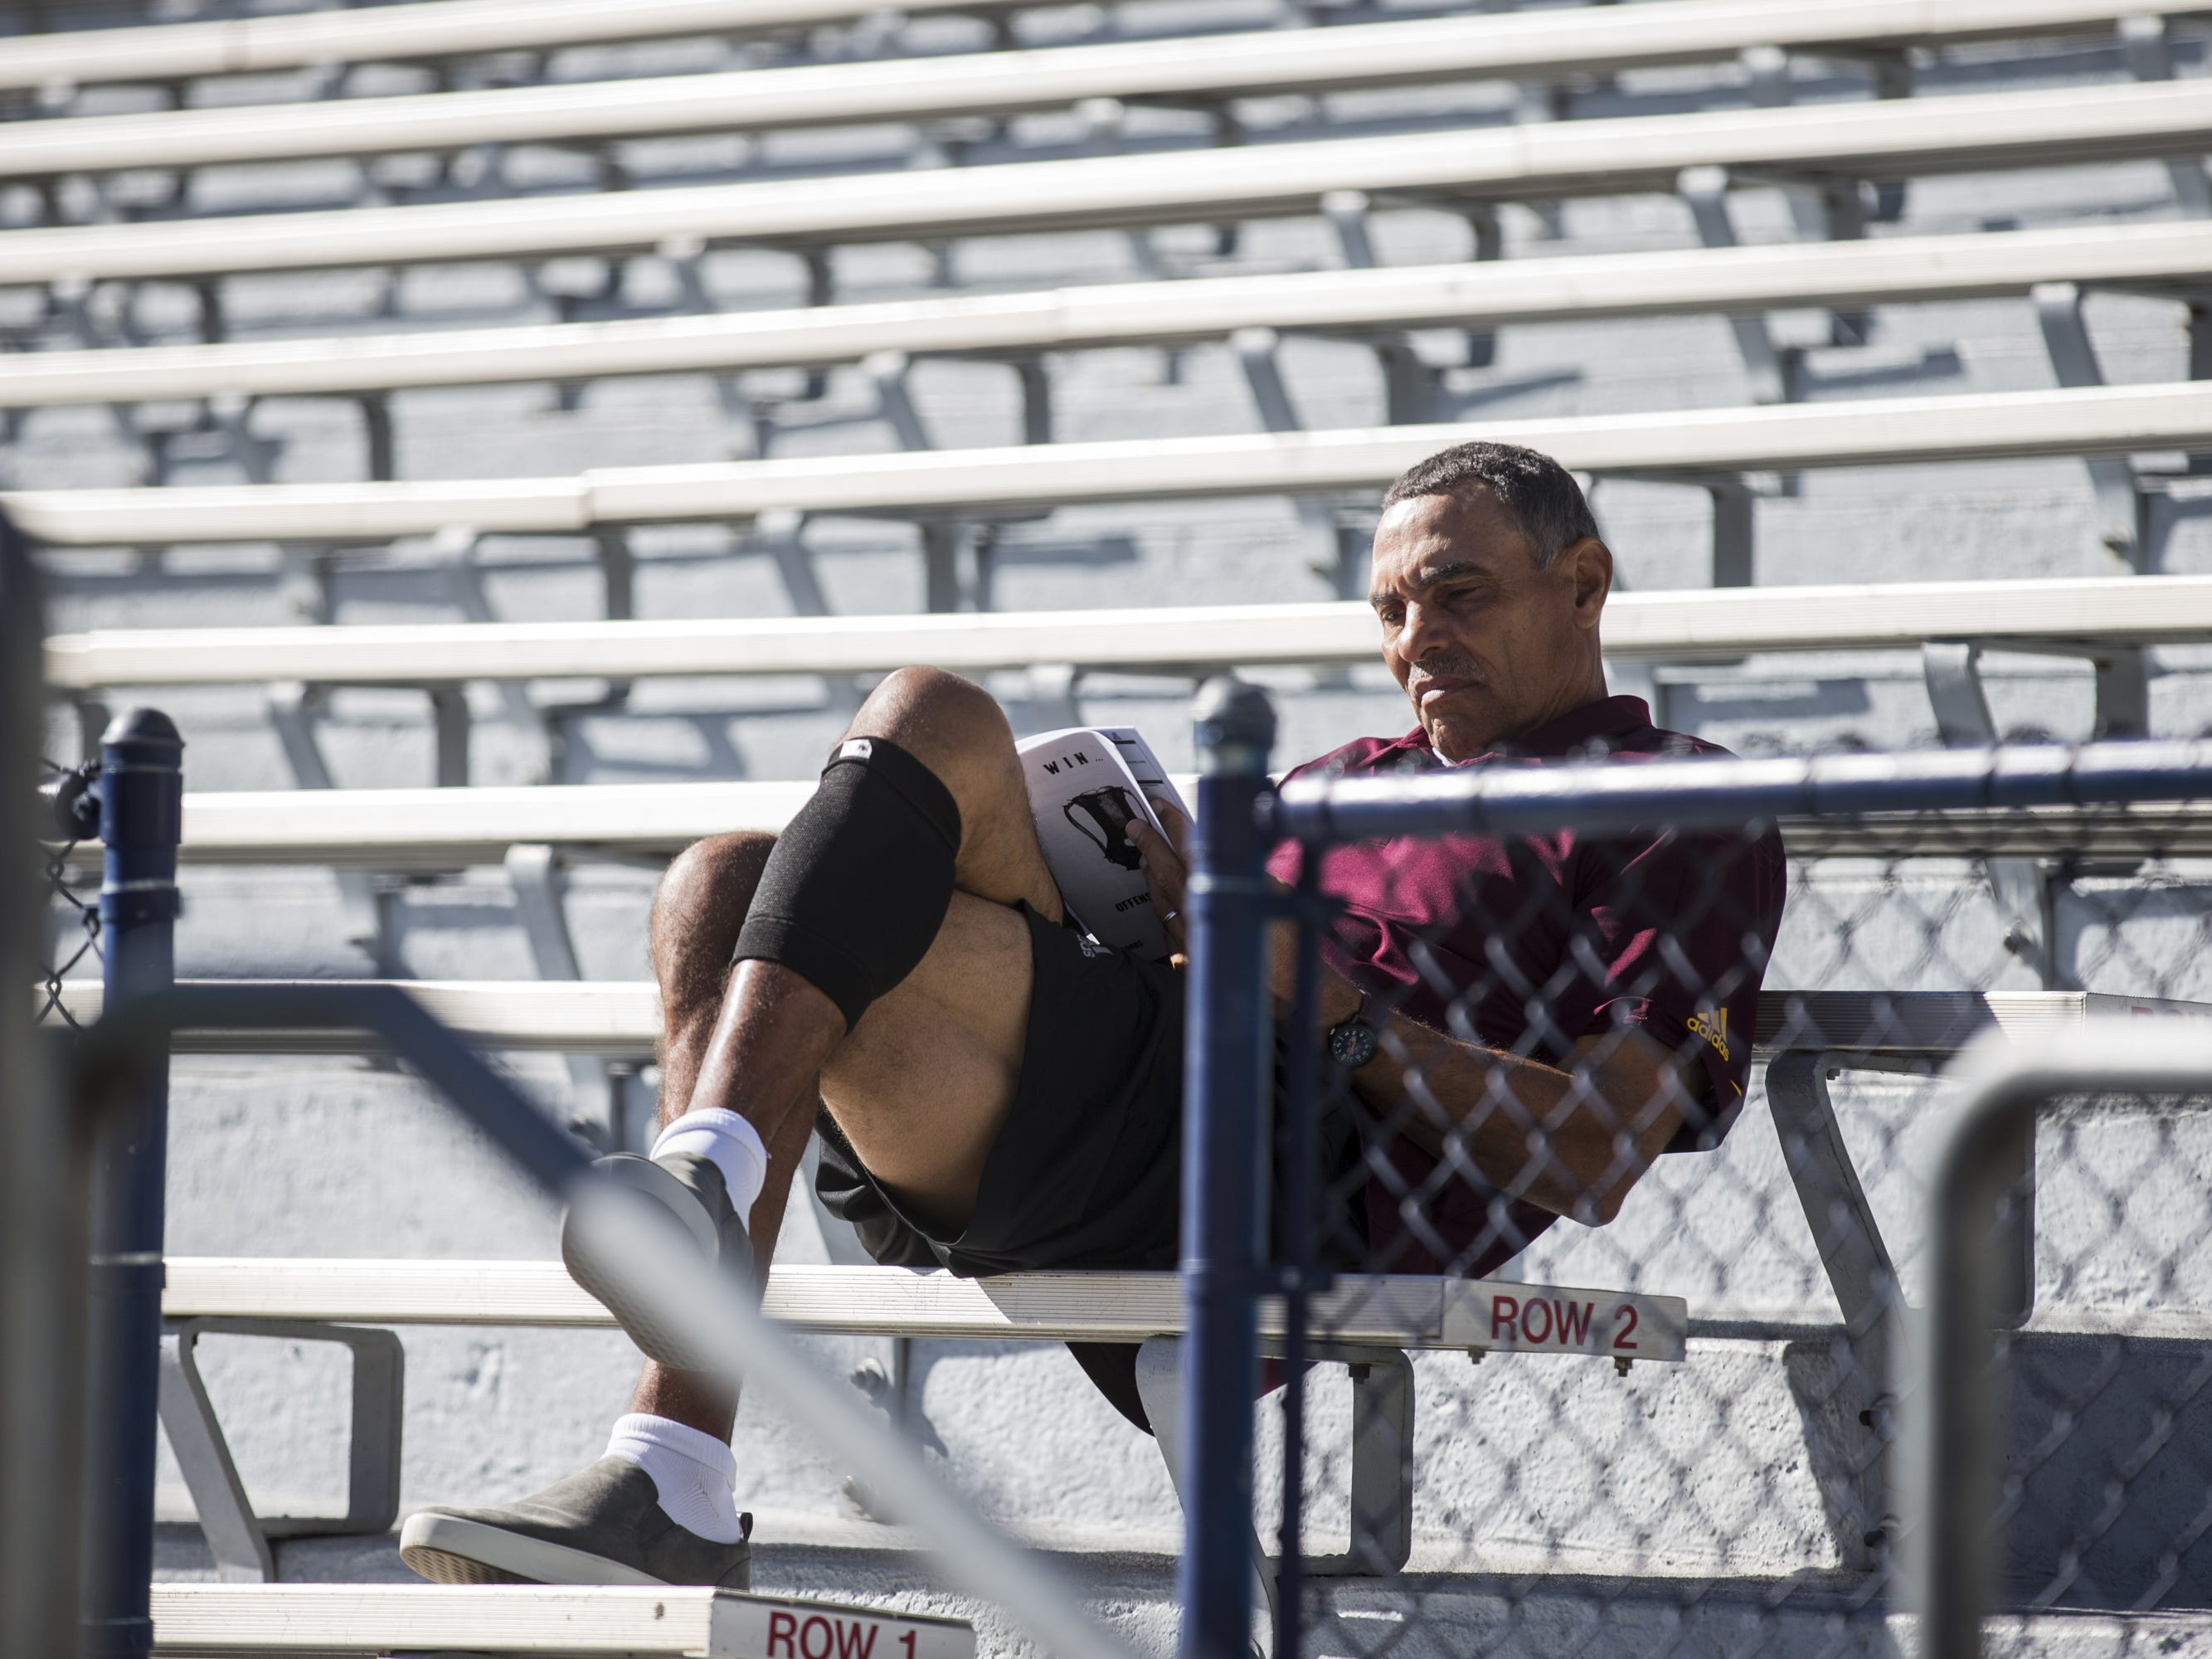 Arizona State head coach Herm Edwards sits on the bleachers before the Territorial Cup football game on Saturday, Nov. 24, 2018, at Arizona Stadium in Tucson, Ariz.